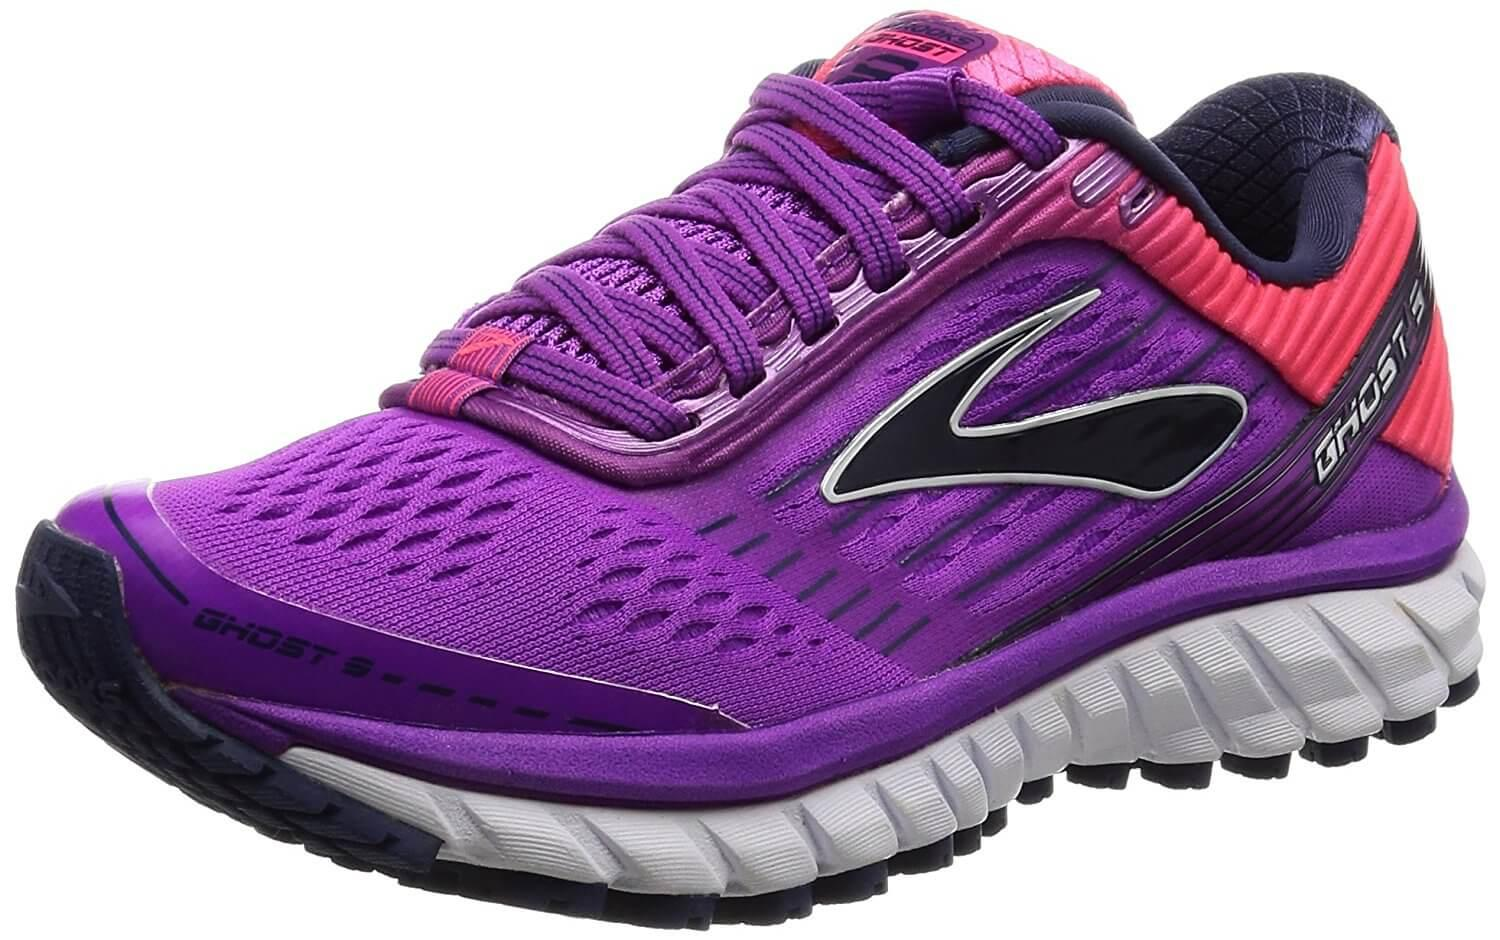 Best Purple Running Shoes Reviewed in